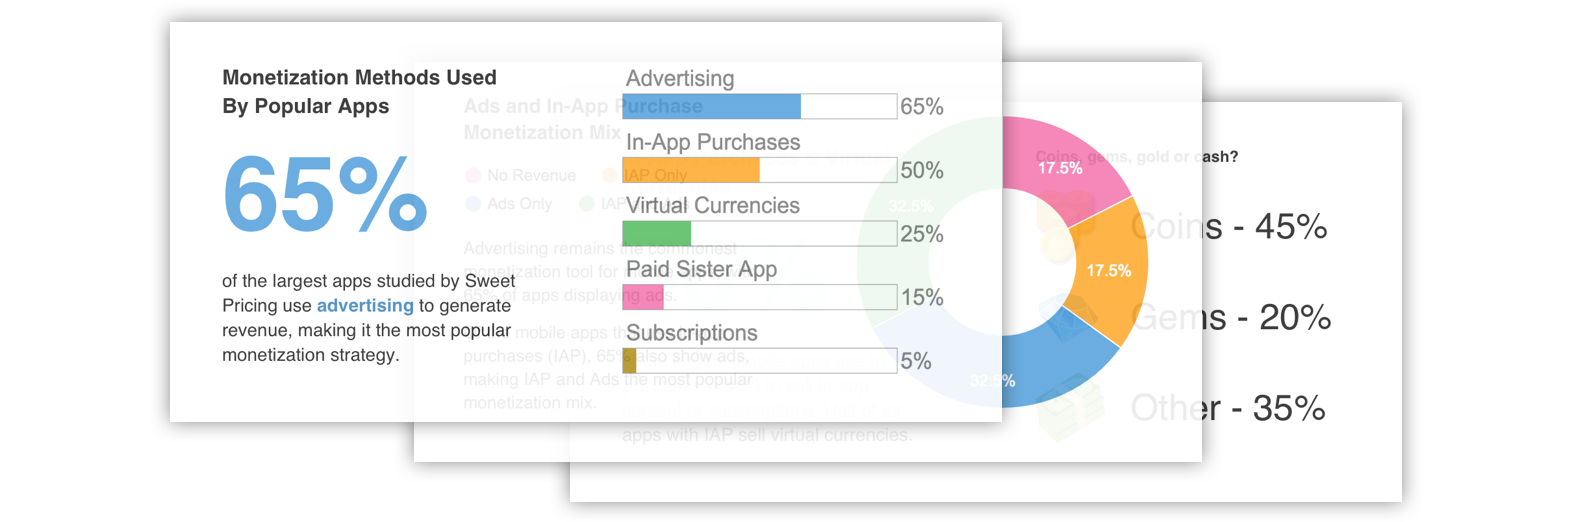 Sweet Pricing has studied 40 mobile apps to analyze the most common app monetization strategies.